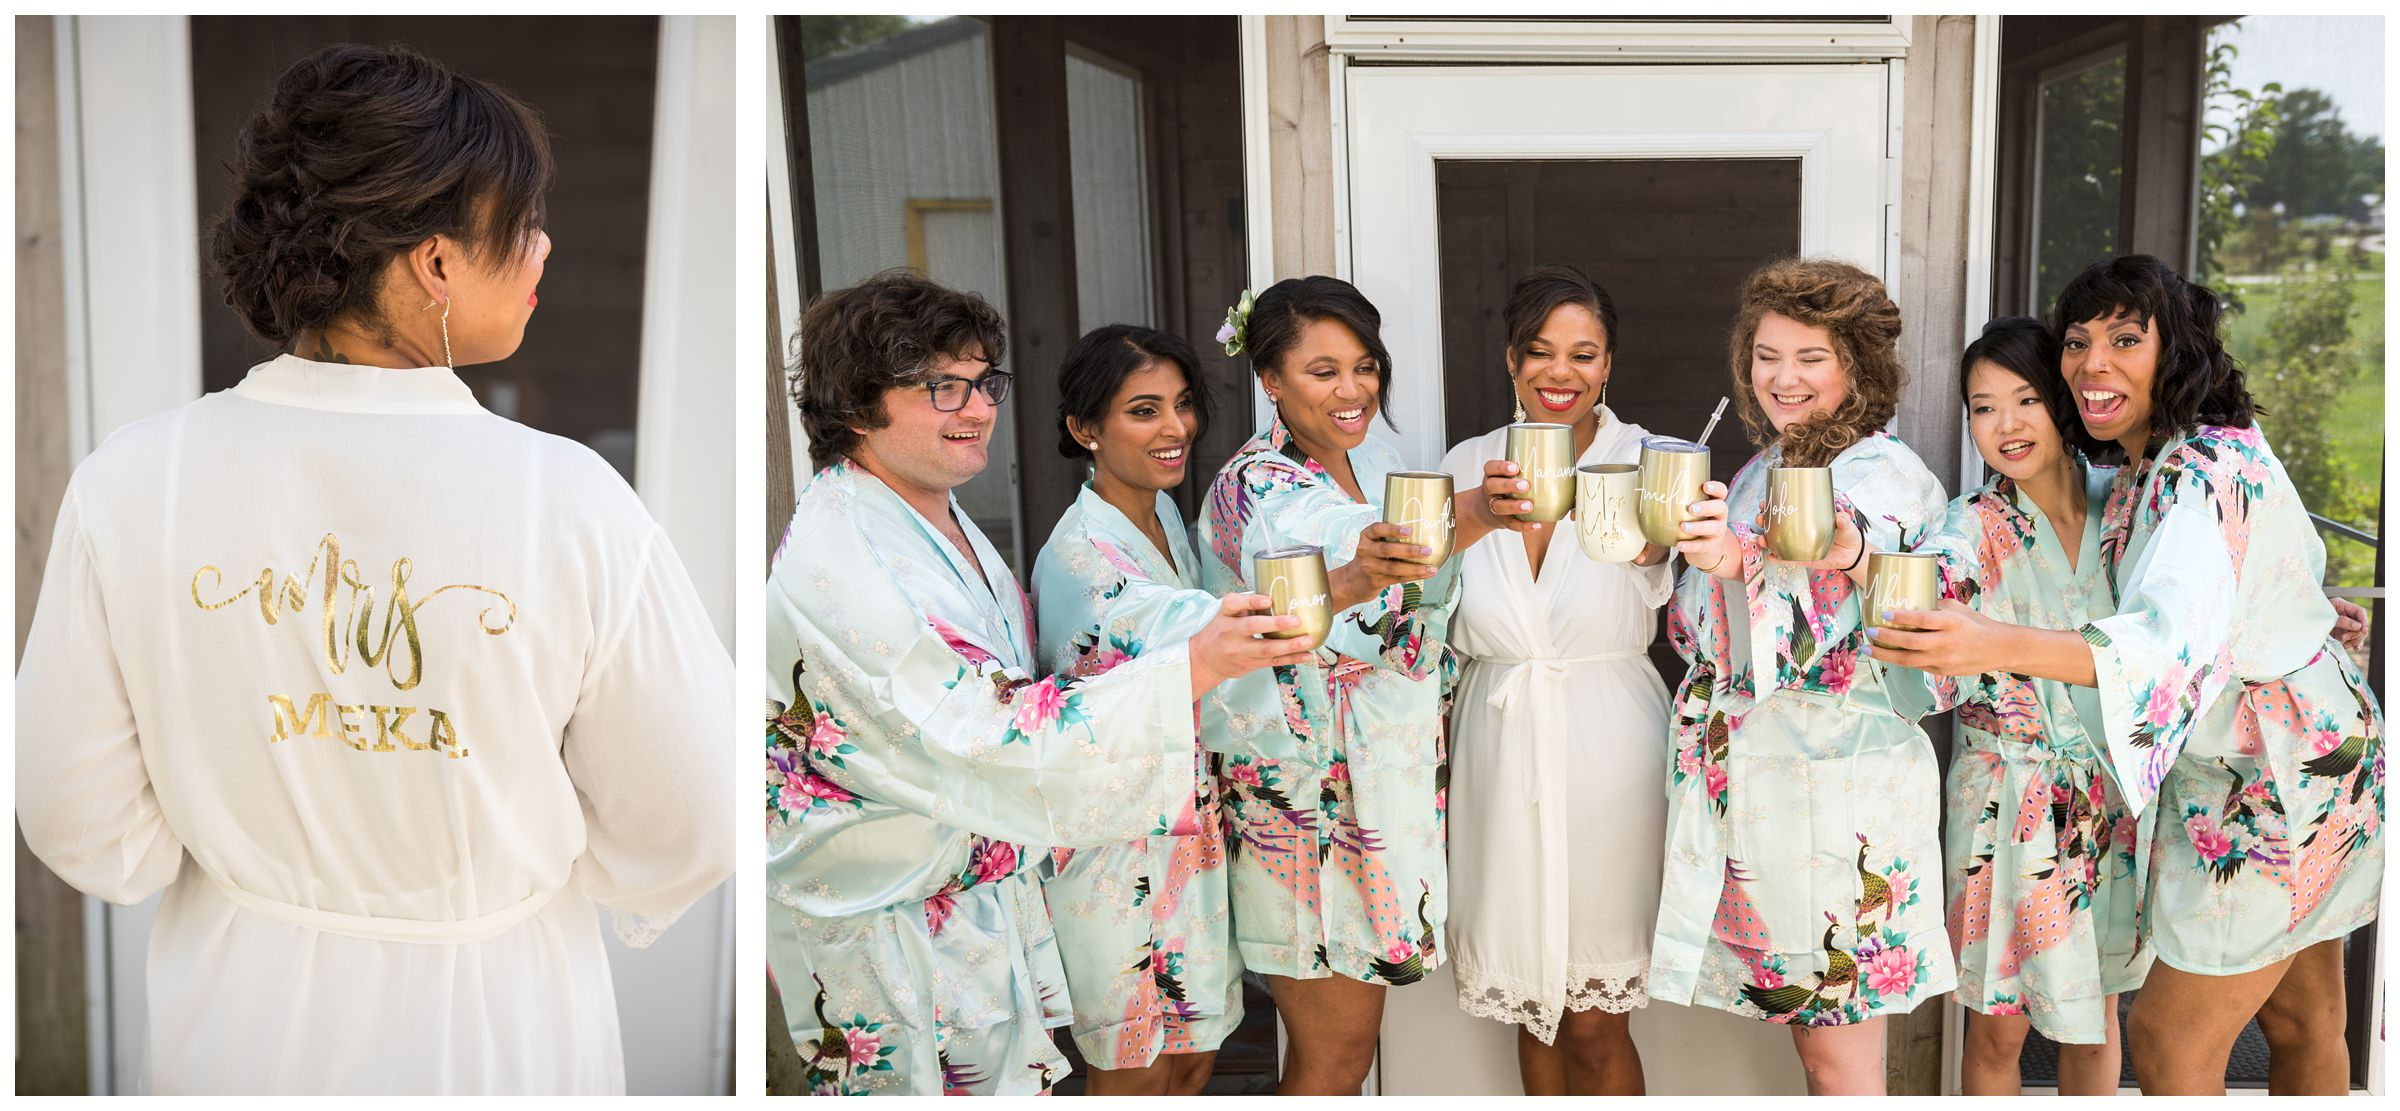 bridesmaids bridesman and bride in robes cheers with champagne